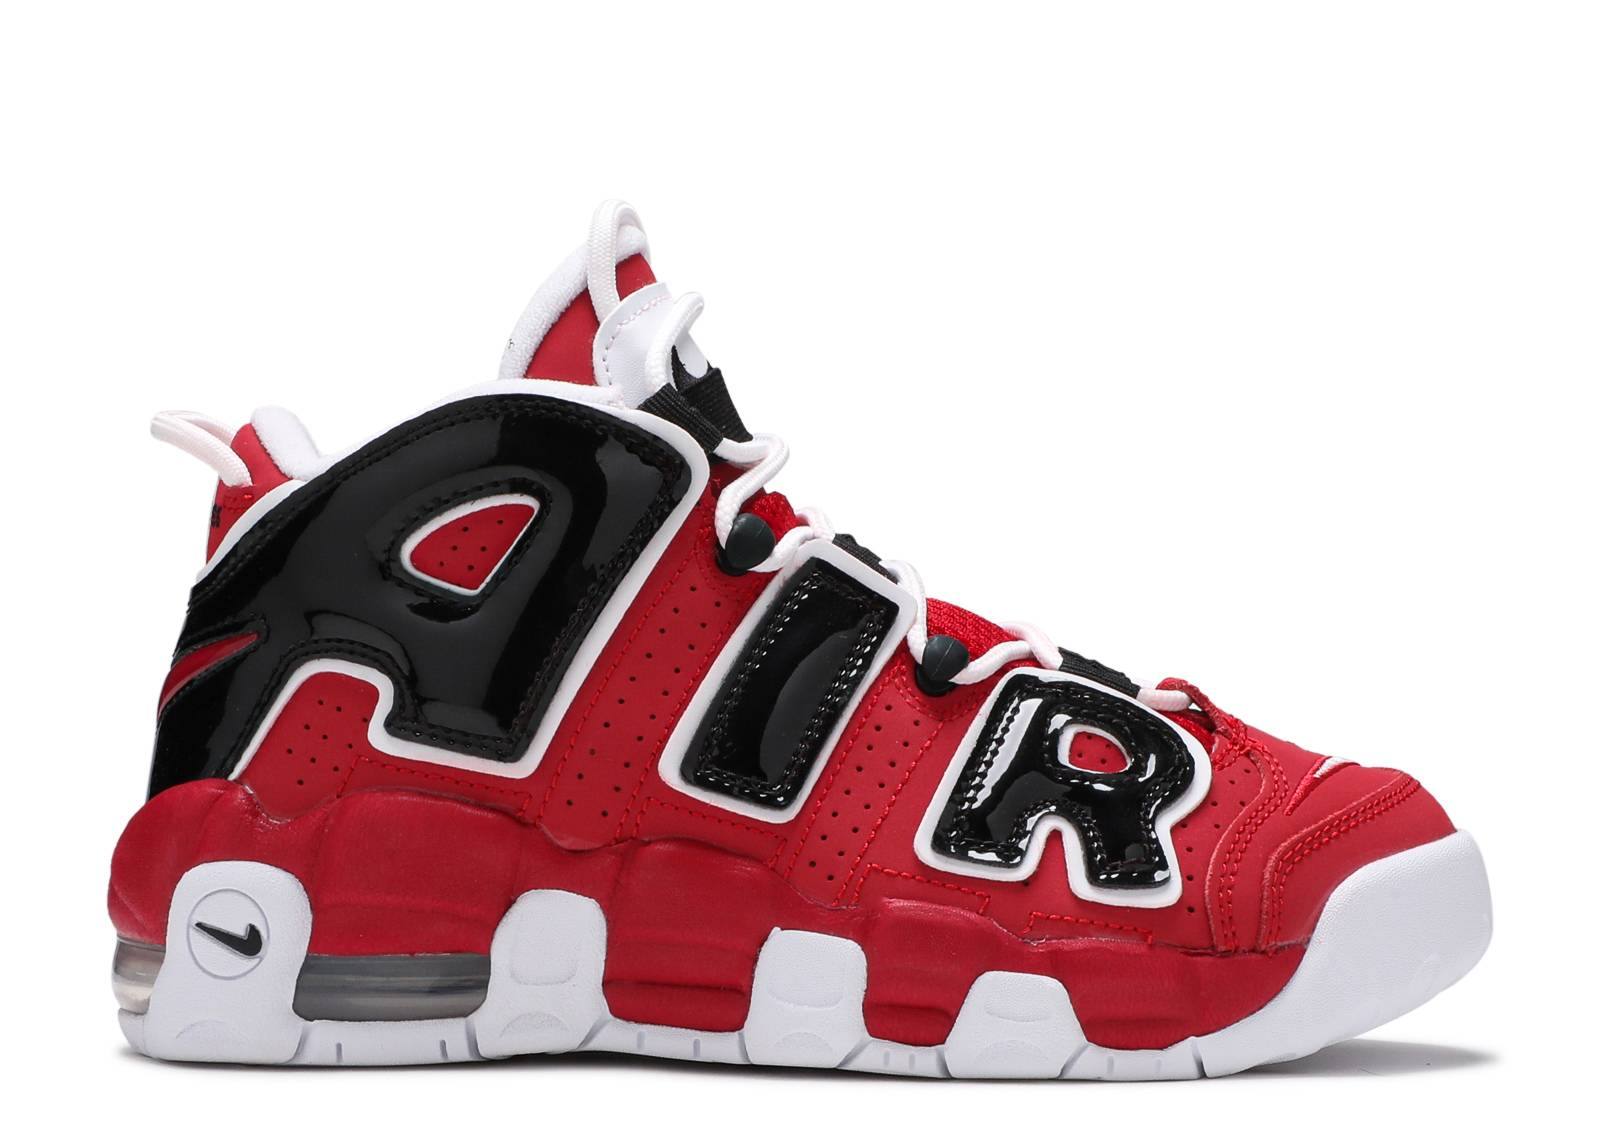 aa1747a1aab7 Air More Uptempo (gs) - Nike - 415082 600 - varsity red white-black ...